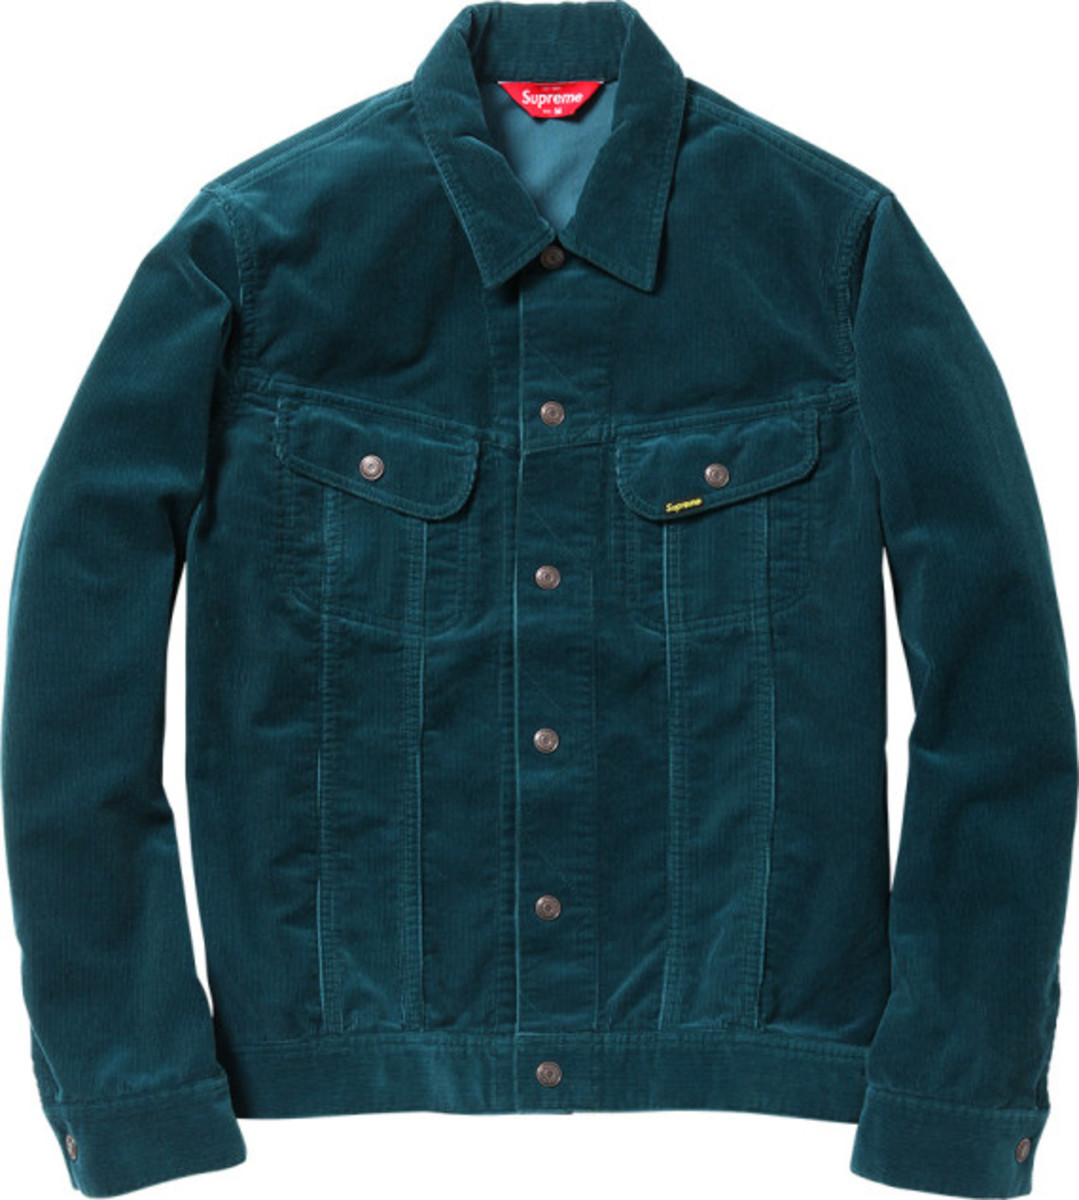 supreme-fall-winter-2013-outerwear-collection-86